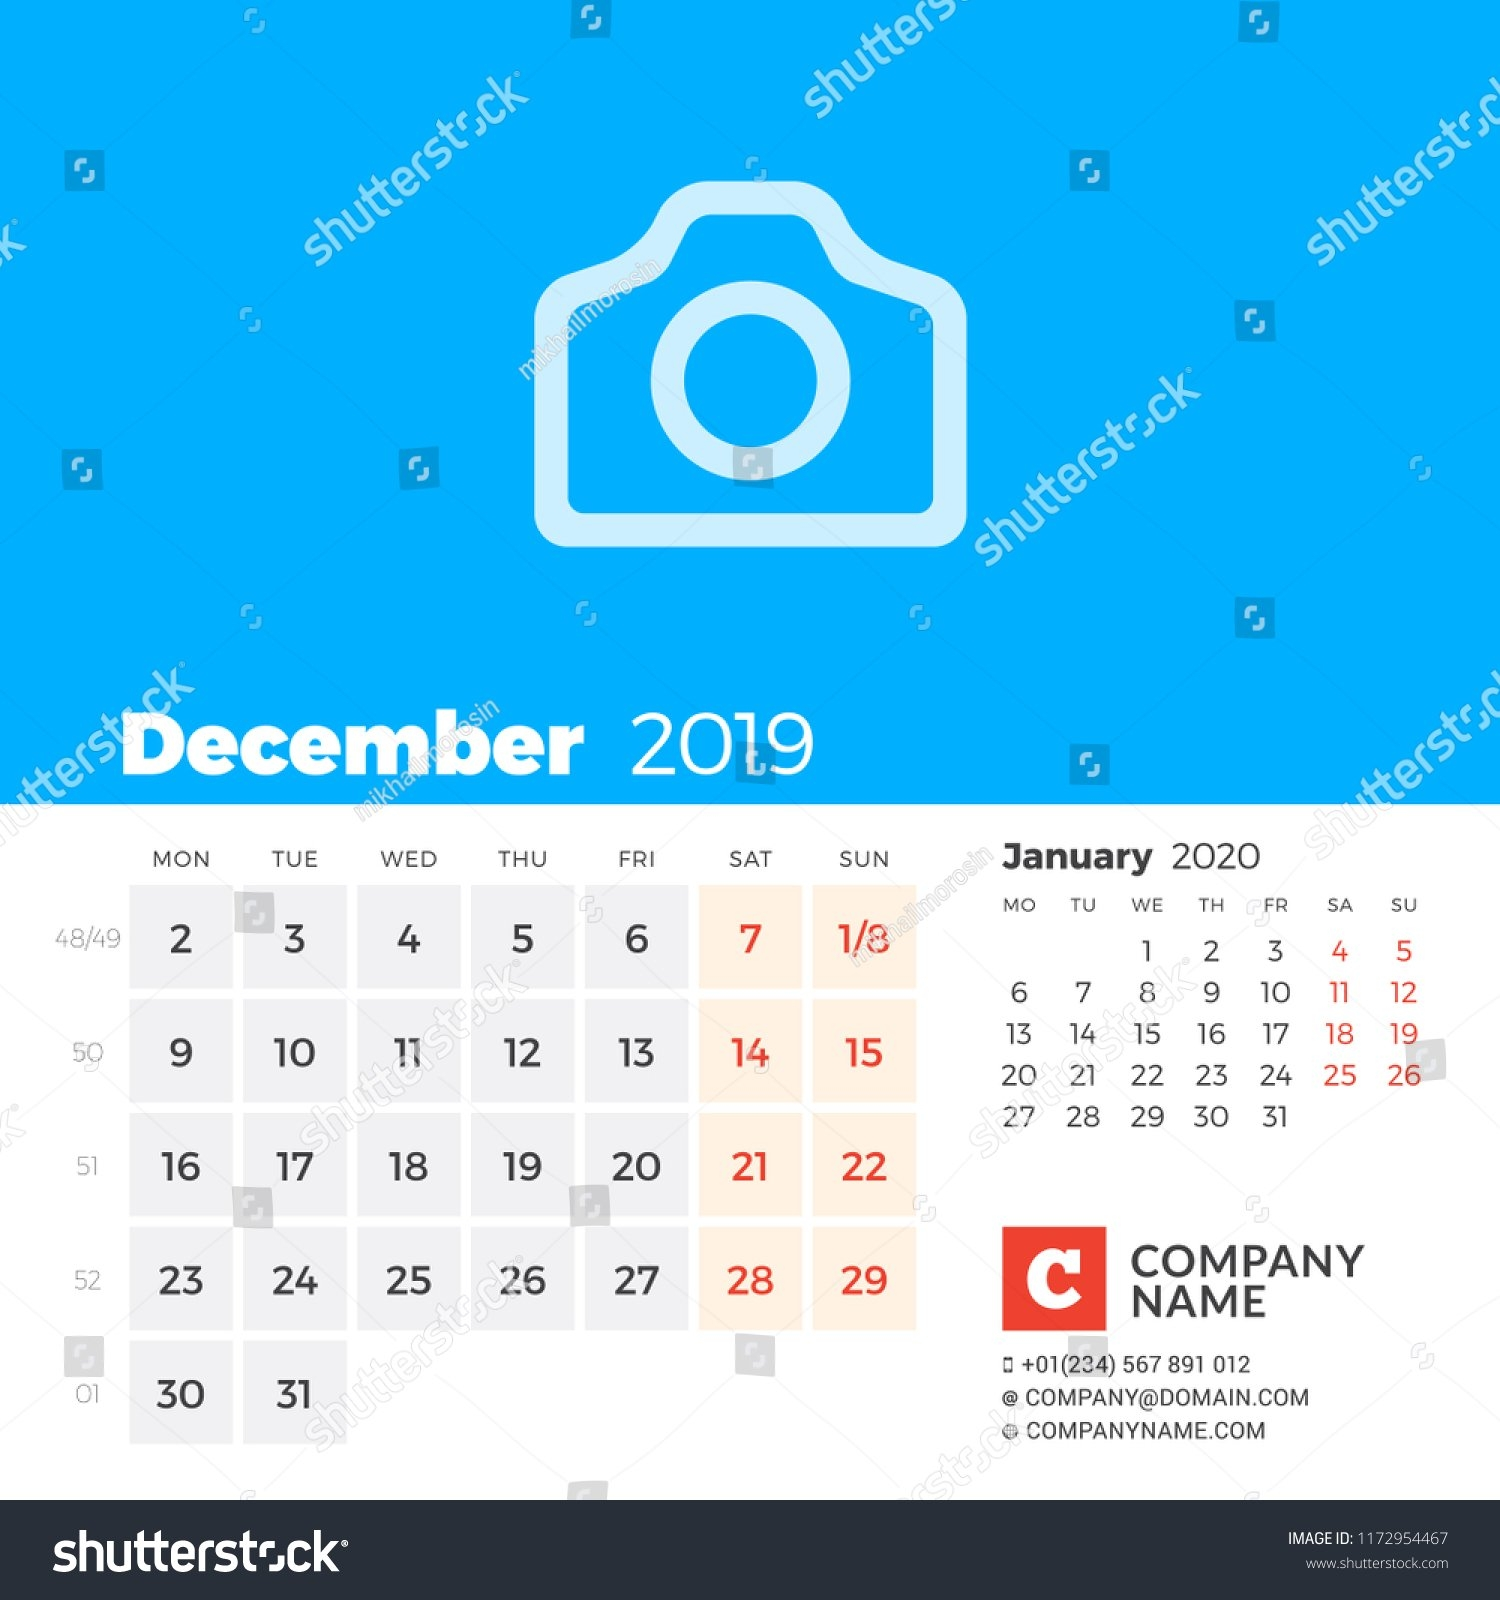 December 2019 Calendar 2019 Year Week Stock Vector (Royalty Free Calendar Week 49 2019